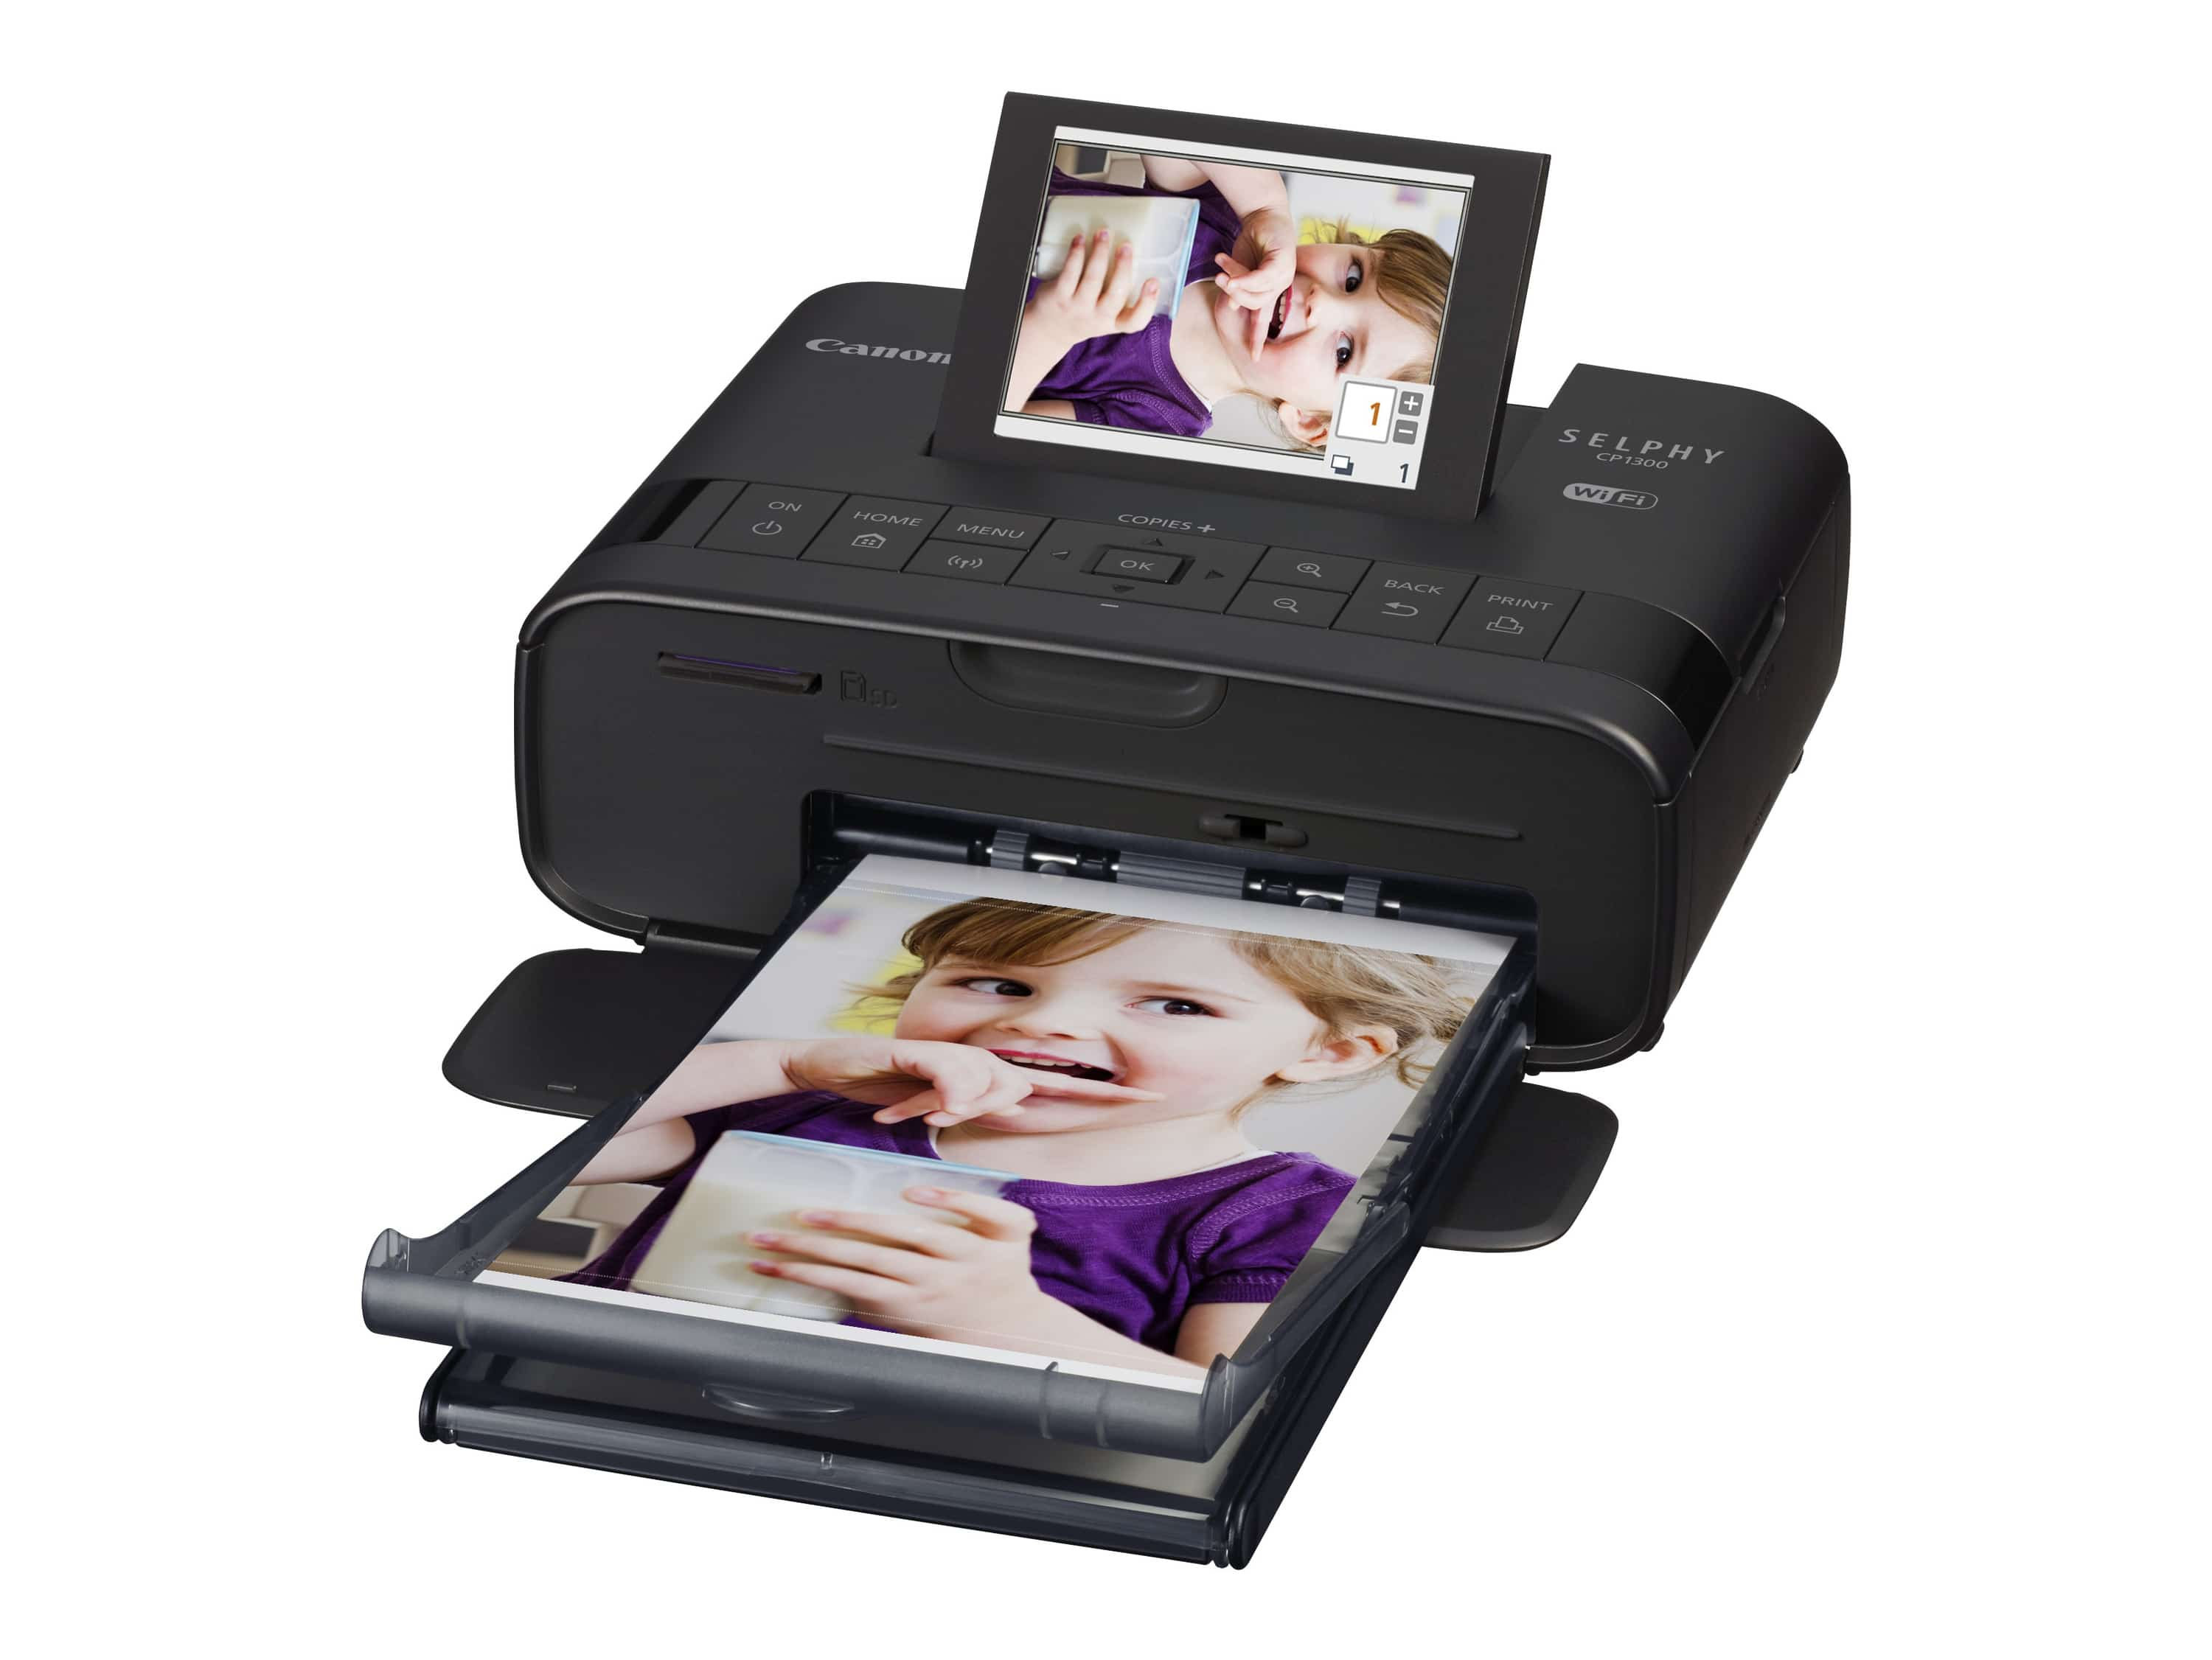 Canon SELPHY CP1300 mobiler Fotodrucker 8,1cm Display WLAN AirPrint für 126,99 Euro